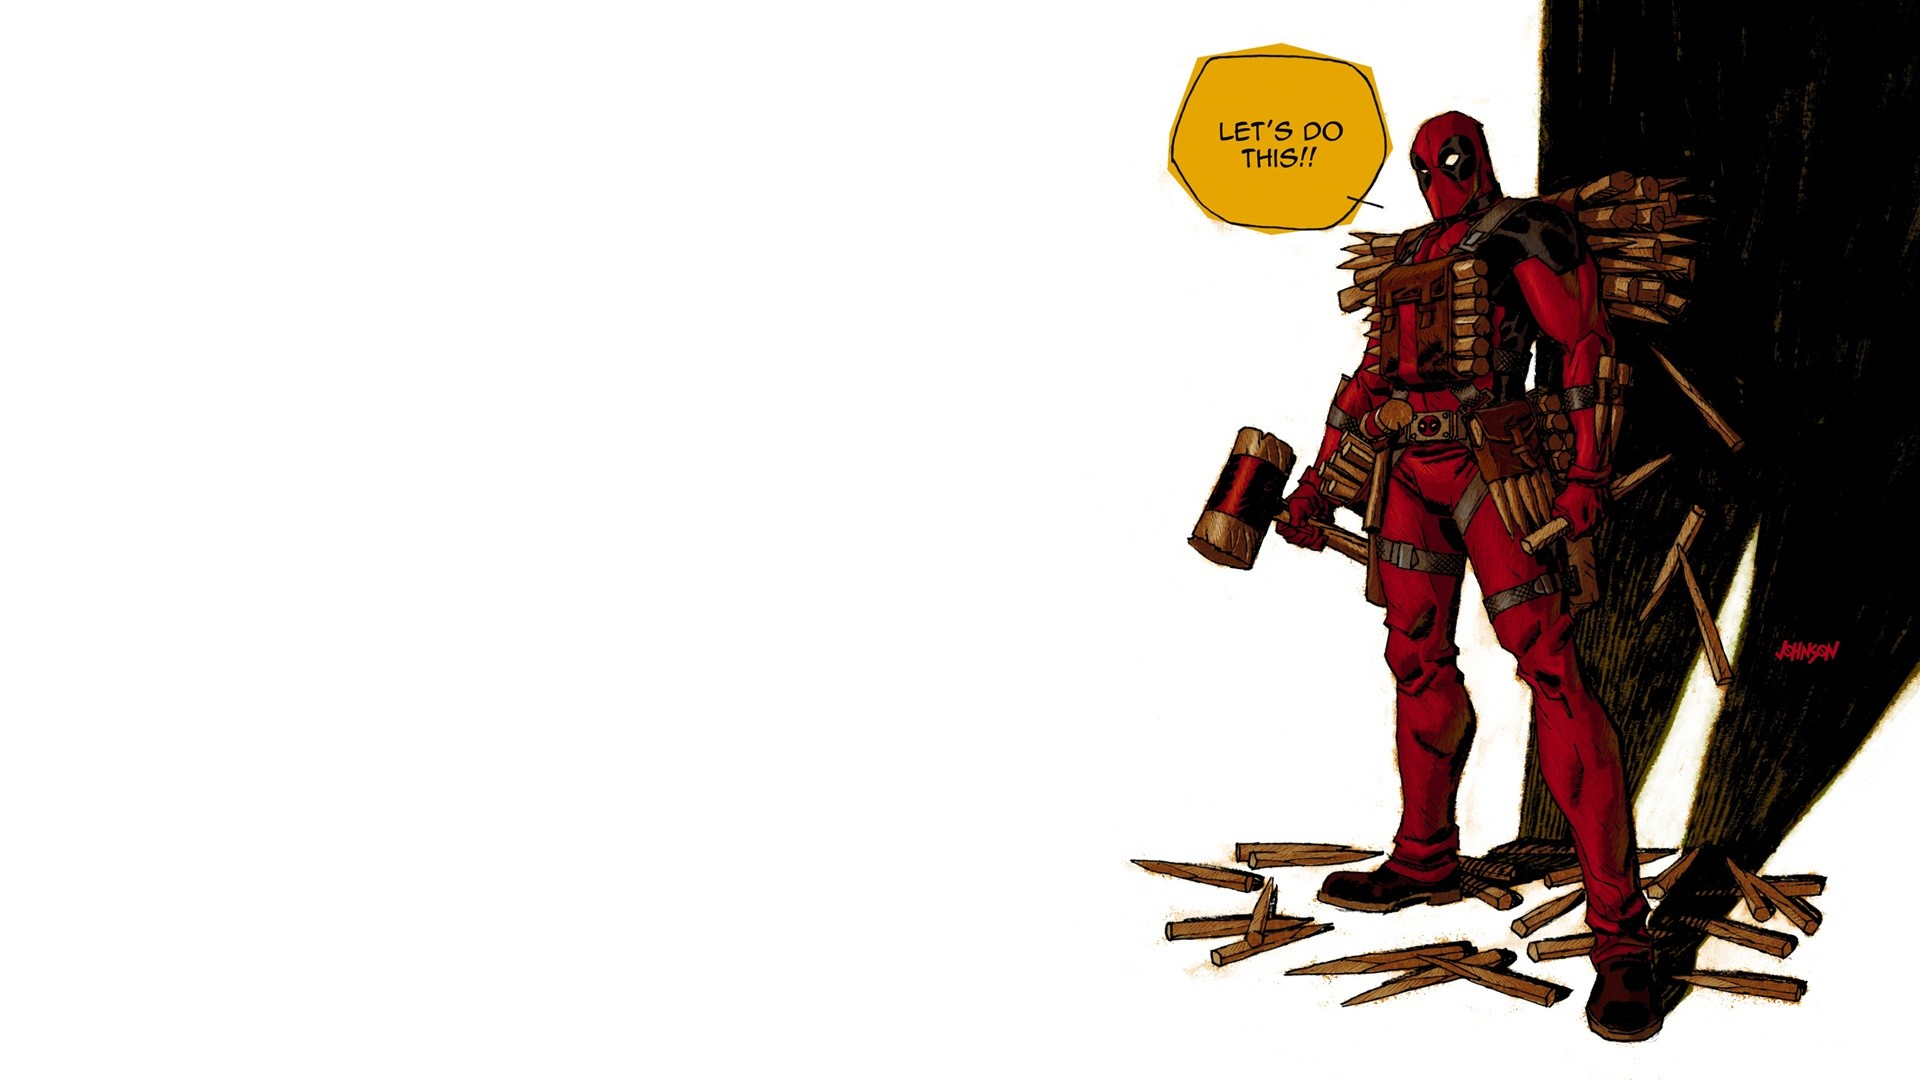 Funny Deadpool Wallpapers 74 Images